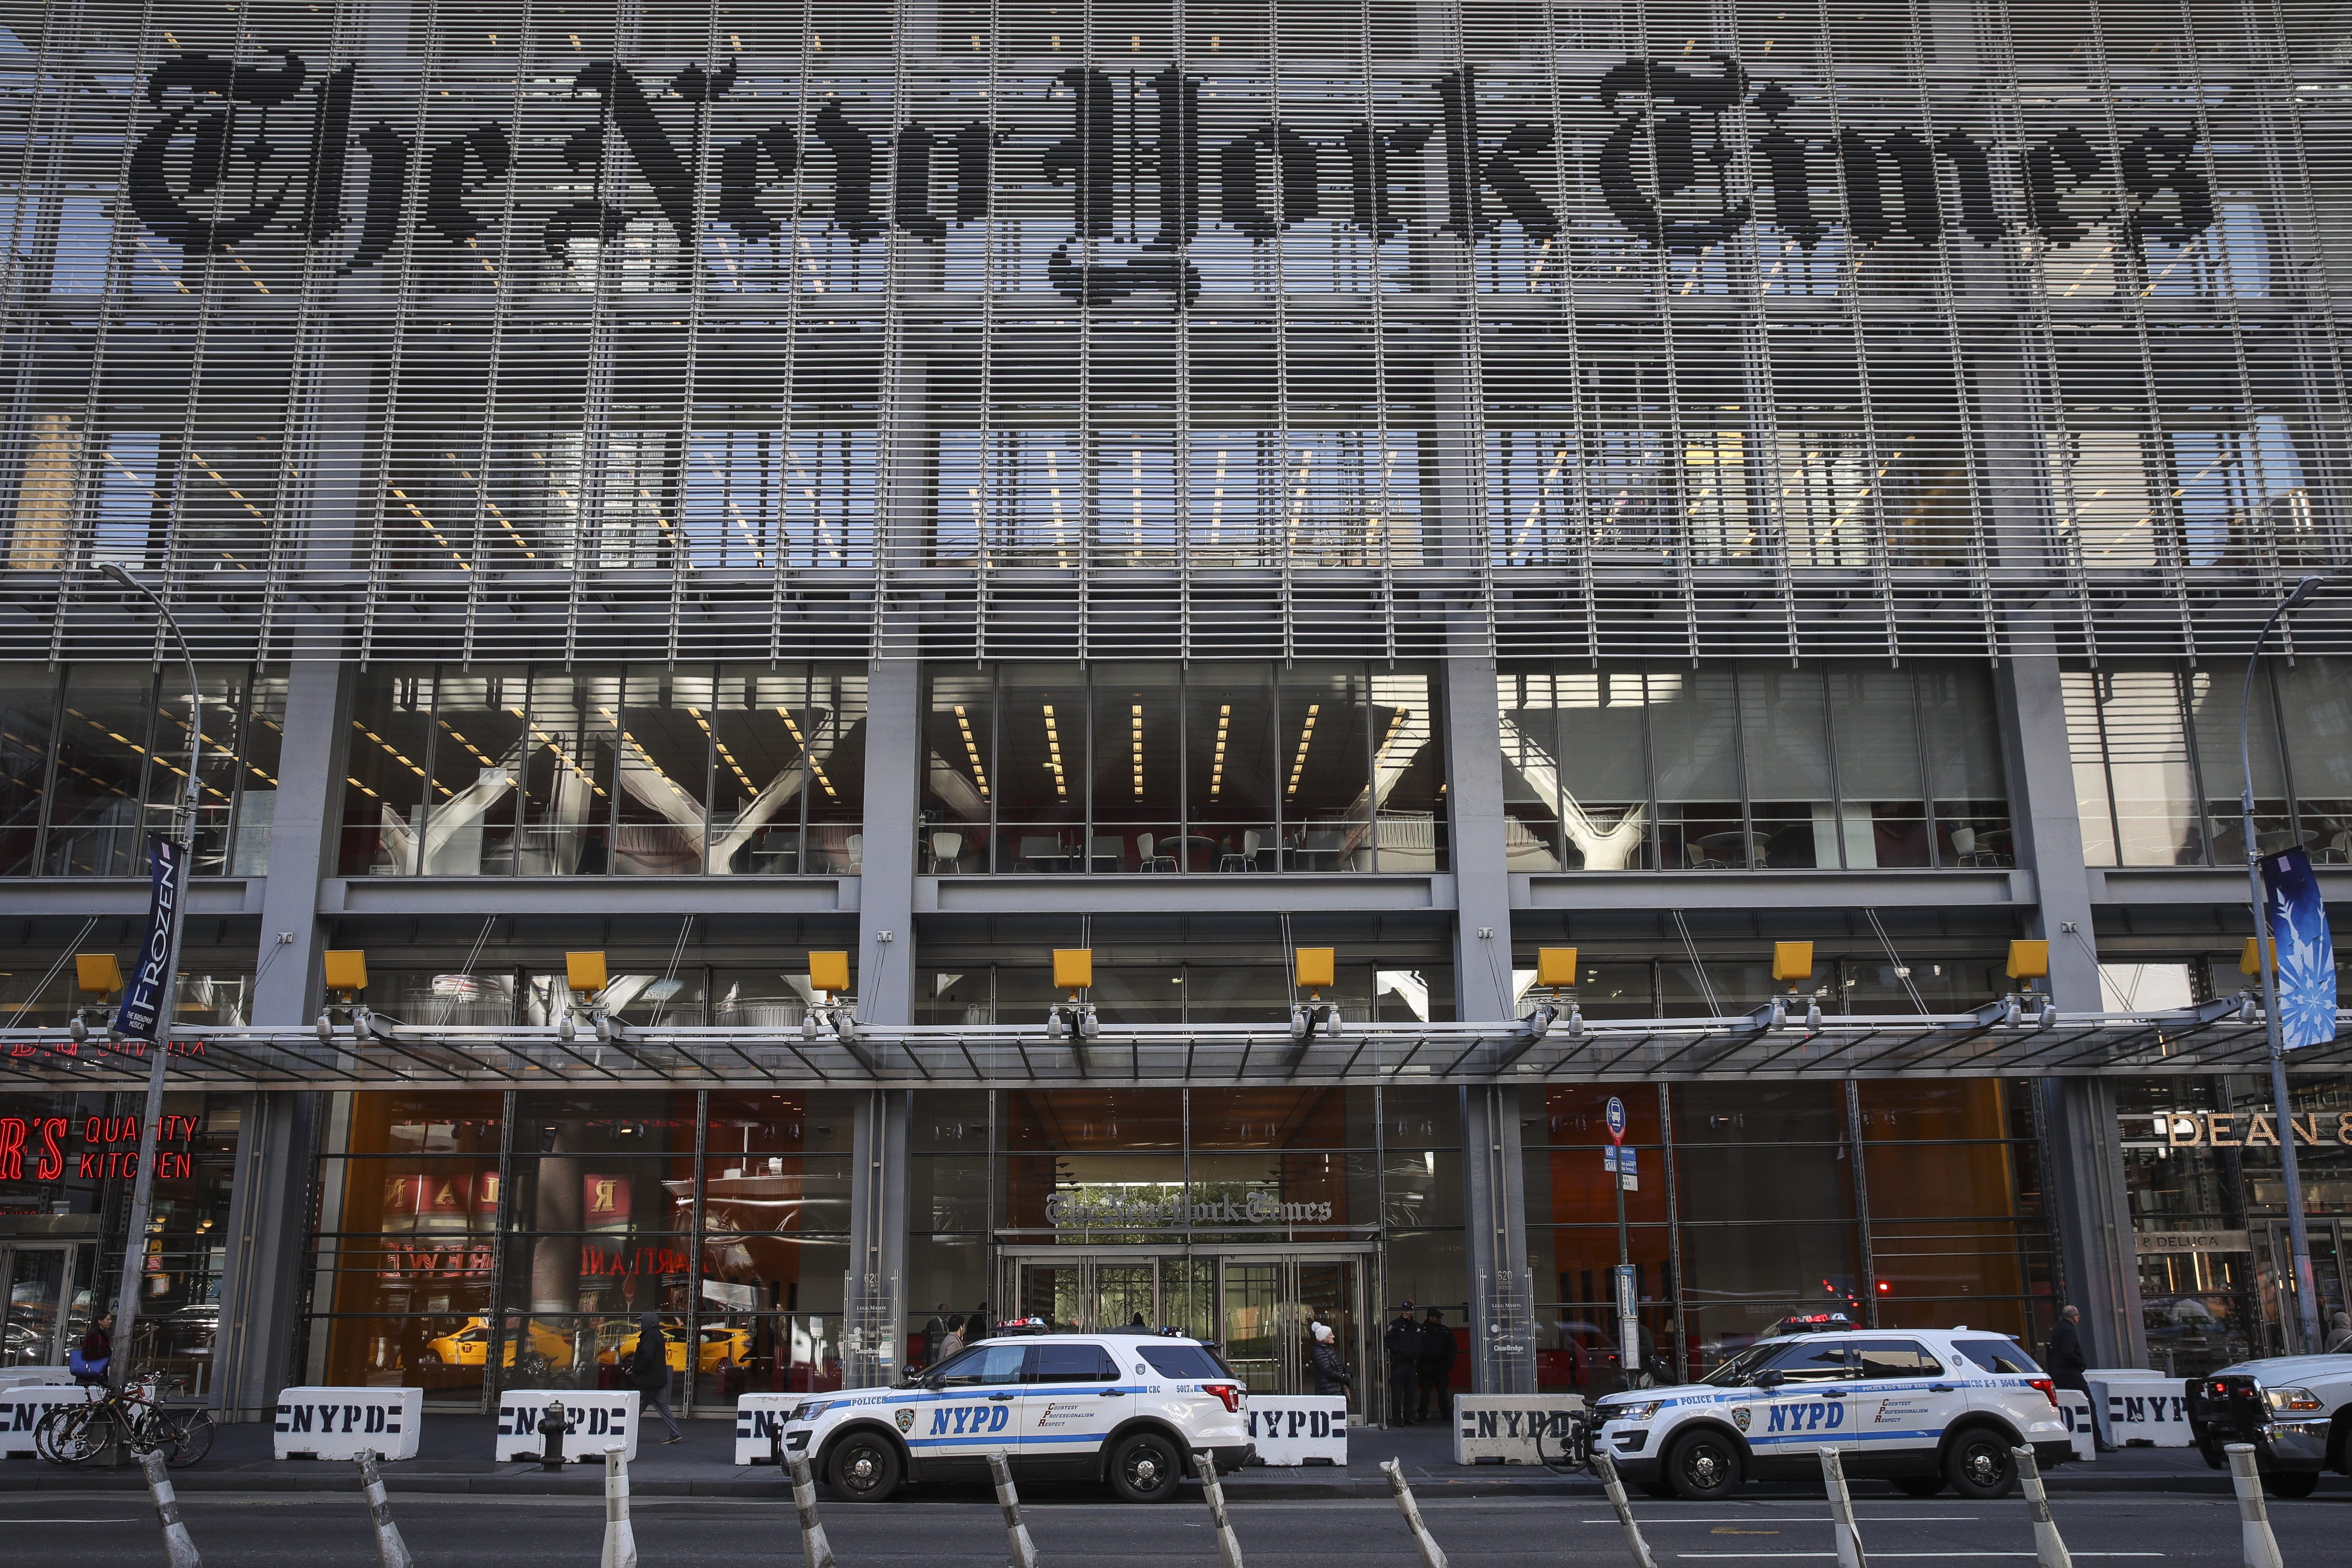 NEW YORK, NY - OCTOBER 25: New York City Police vehicles sit parked outside the office of the The New York Times, October 25, 2018 in New York City. Security is being ramped up in New York City after explosive devices were sent to top Democratic politicians and to CNN headquarters. (Photo by Drew Angerer/Getty Images)